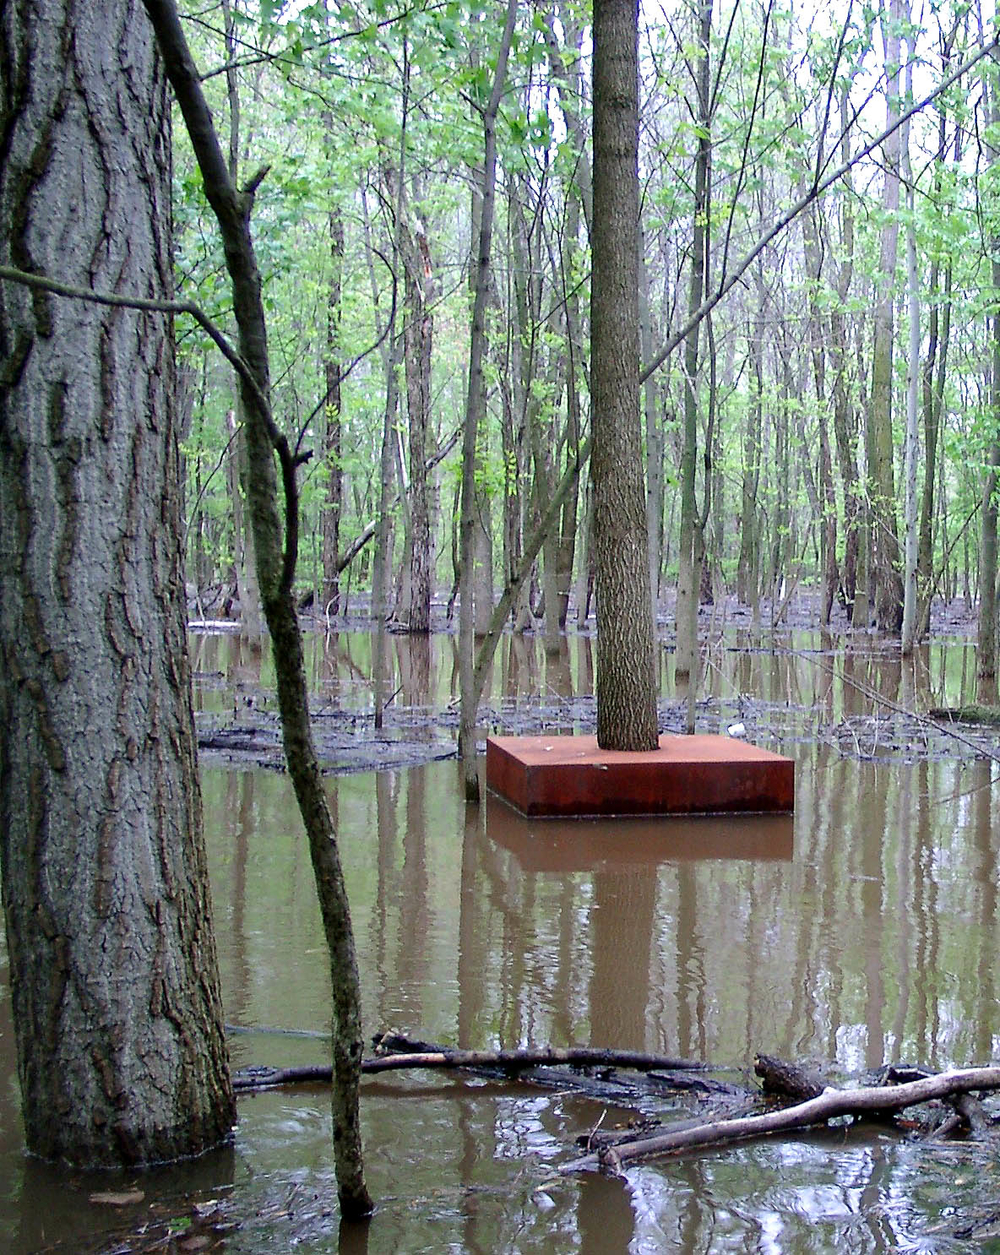 sculpture_tree_cube_snow_flood_fall_siu_carbondale_il_2003-04-27_[17 tree cube flooded]_12818.jpg